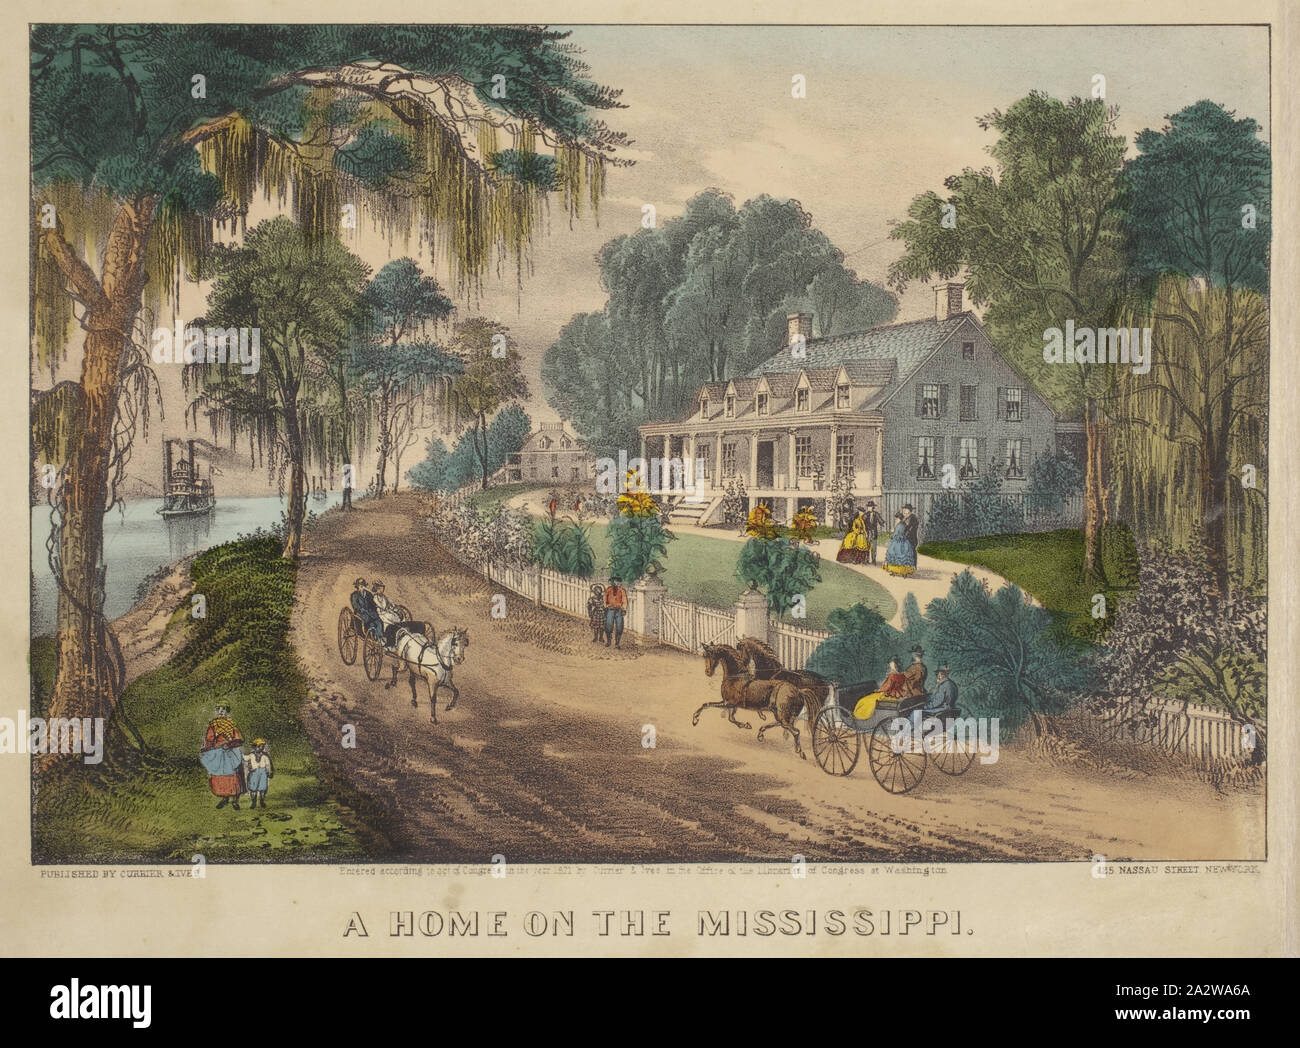 A Home on the Mississippi, Nathaniel Currier (American, 1813-1888), James Merritt Ives (American, 1824-1895), 1871, hand-colored lithograph, 8-1/2 x 12-1/2 in. (image) 10-1/4 x 14-1/8 in. (sheet Stock Photo